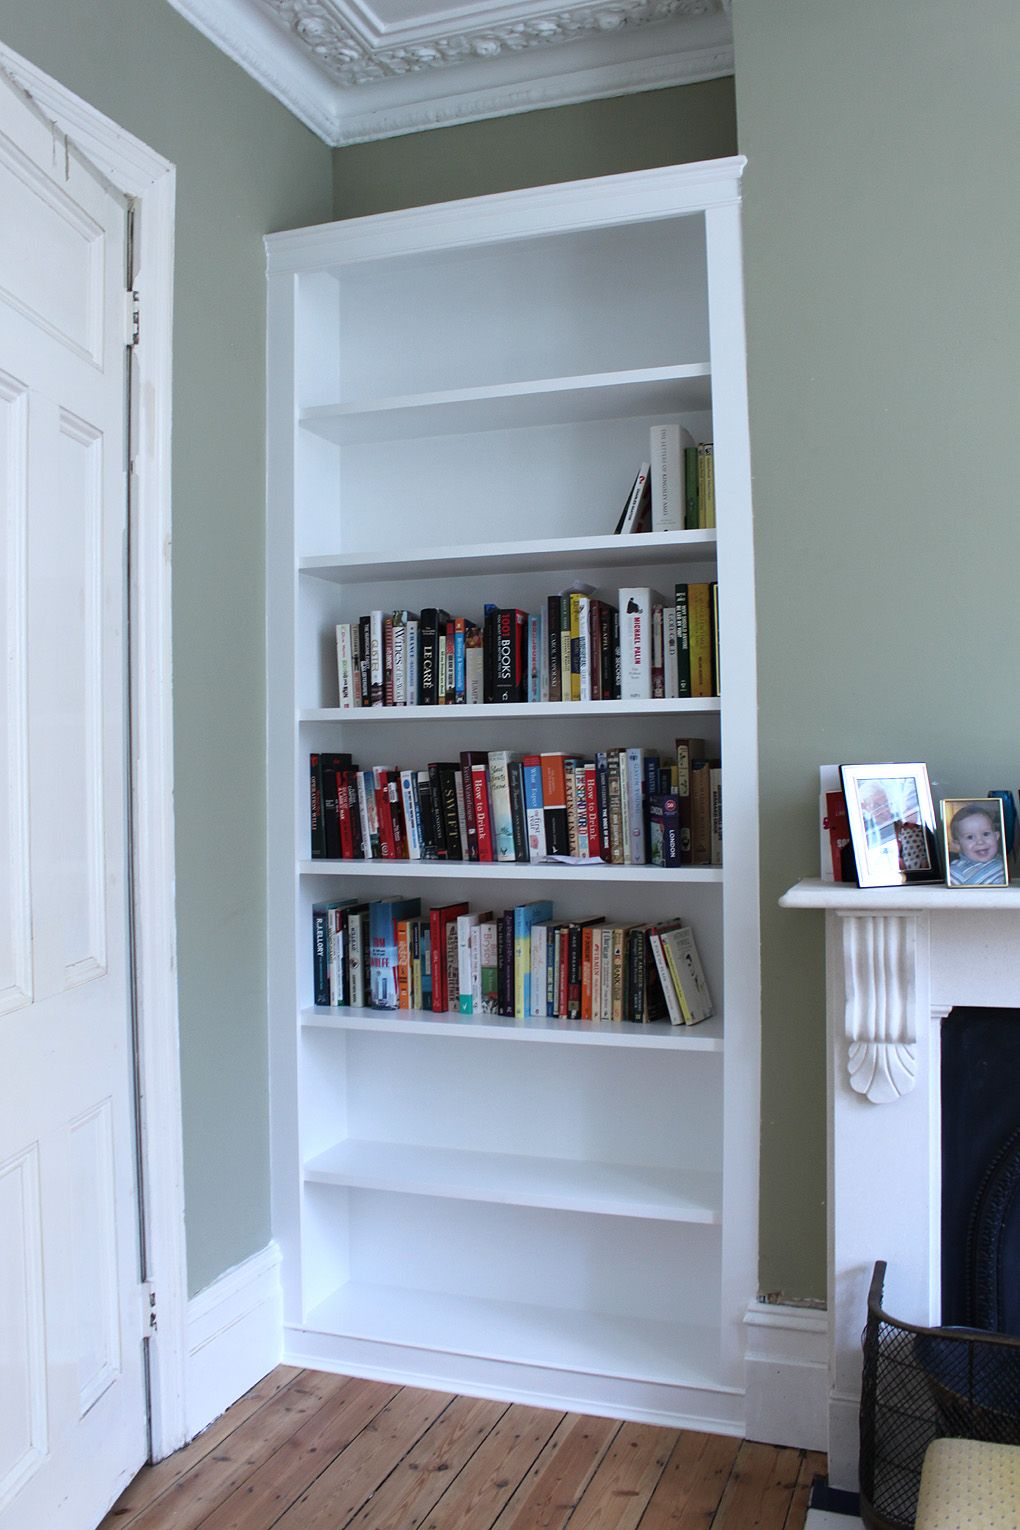 Wardrobe Company Floating Shelves Boockcase Cupboards Ed Furniture Custom Made To Measure London Wardrobes In Bookshelves